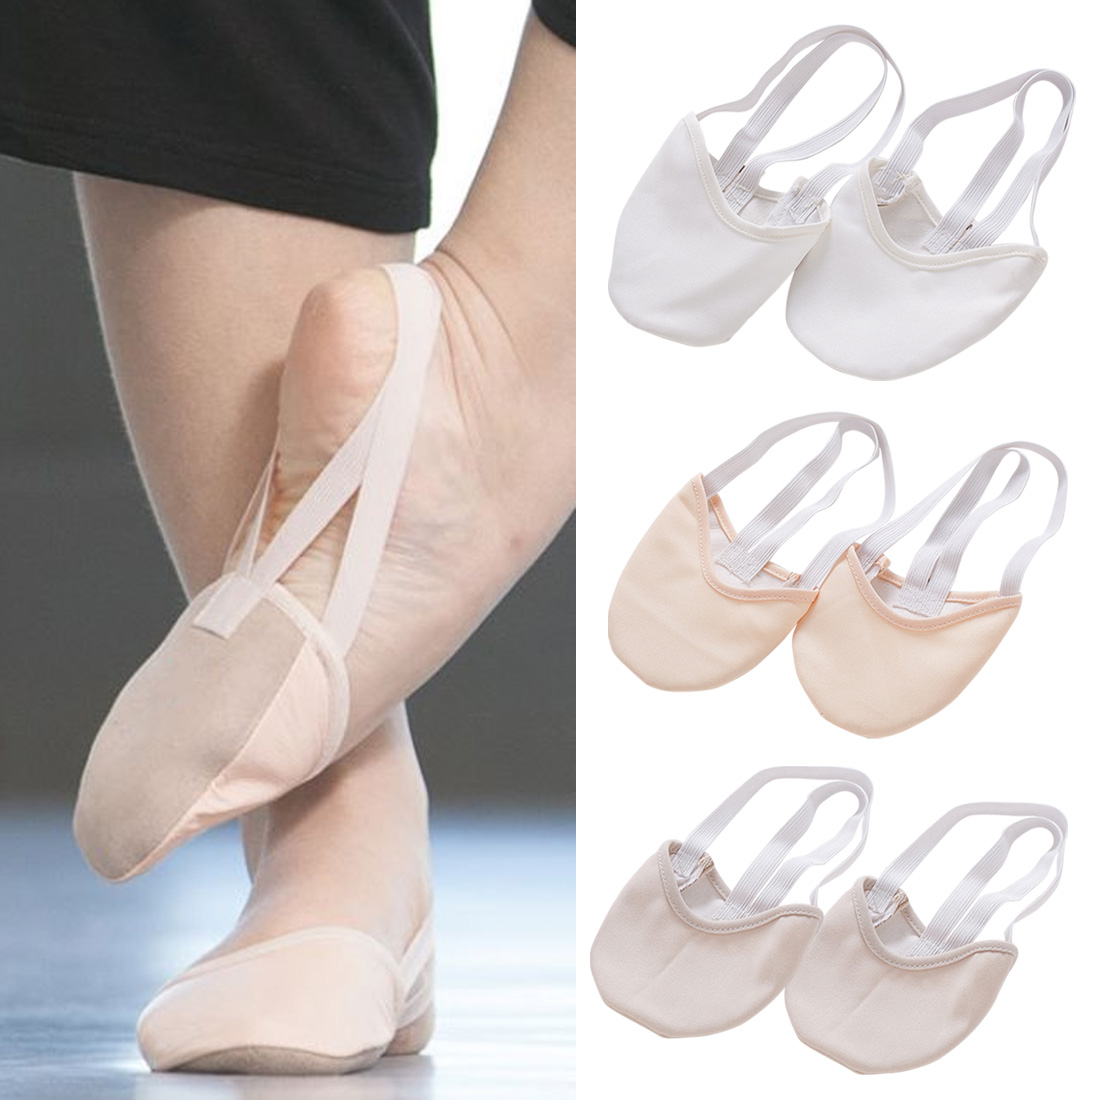 Hot Half Length Rhythmic Gymnastic Shoes Roupa Ginastica Child Adult Gymnastics Pig Skin Sole Shoes Beige Dancing Dance